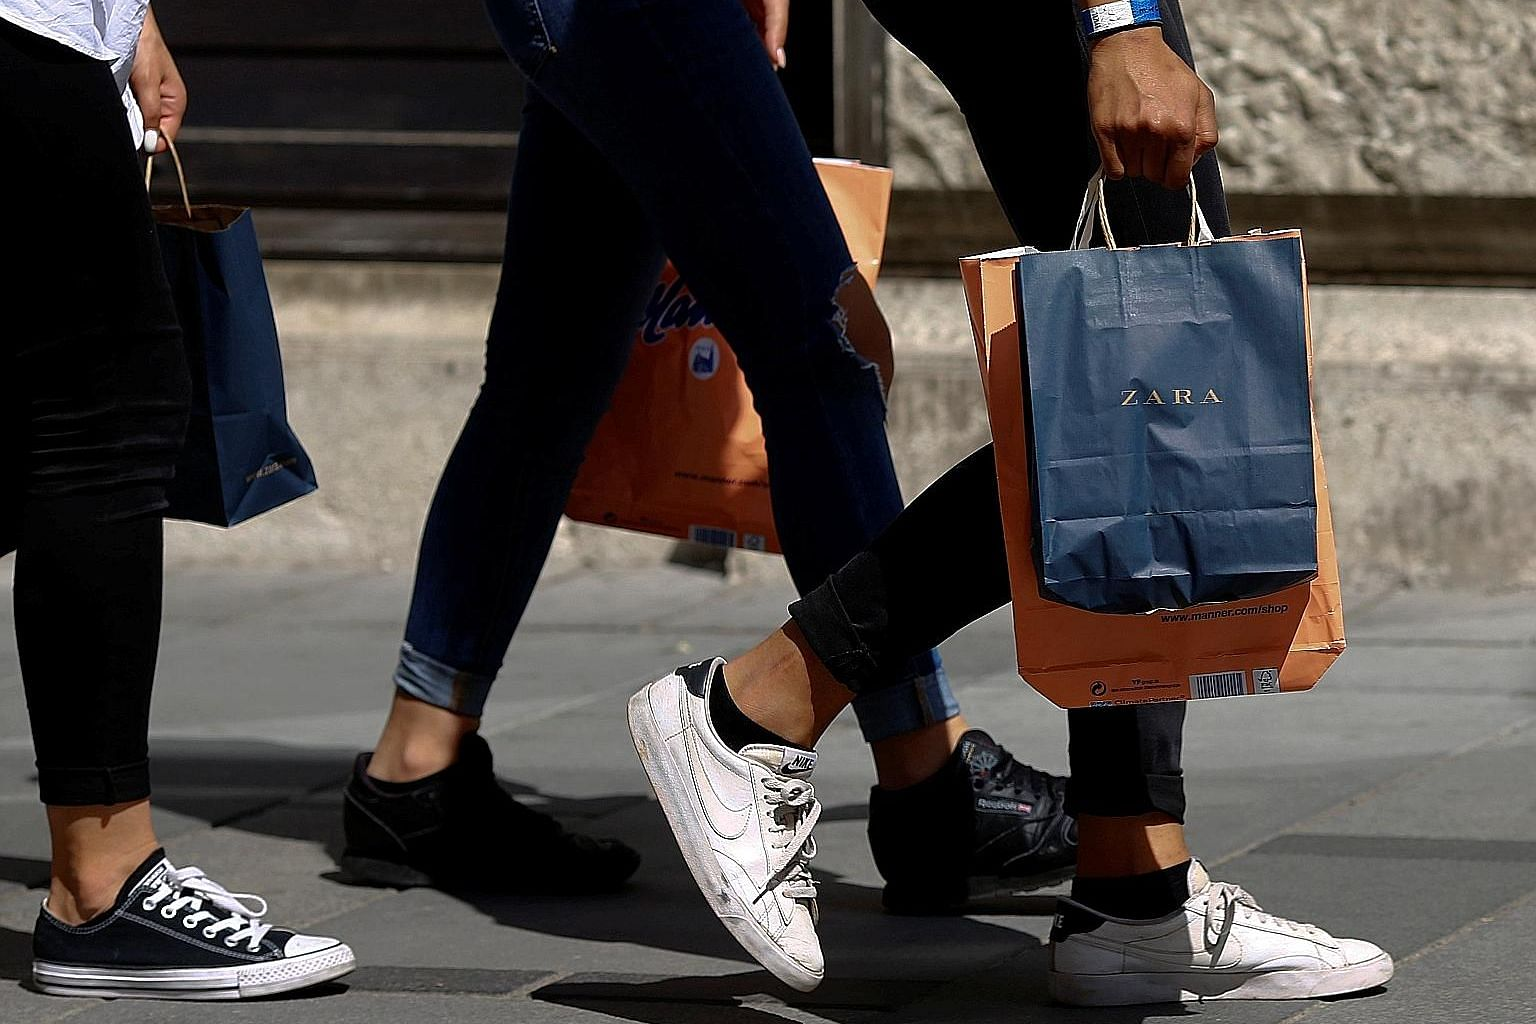 A shopper in Vienna carrying a bag from Spanish fashion retailer Zara. Prices of the brand's products seem to vary widely from country to country.